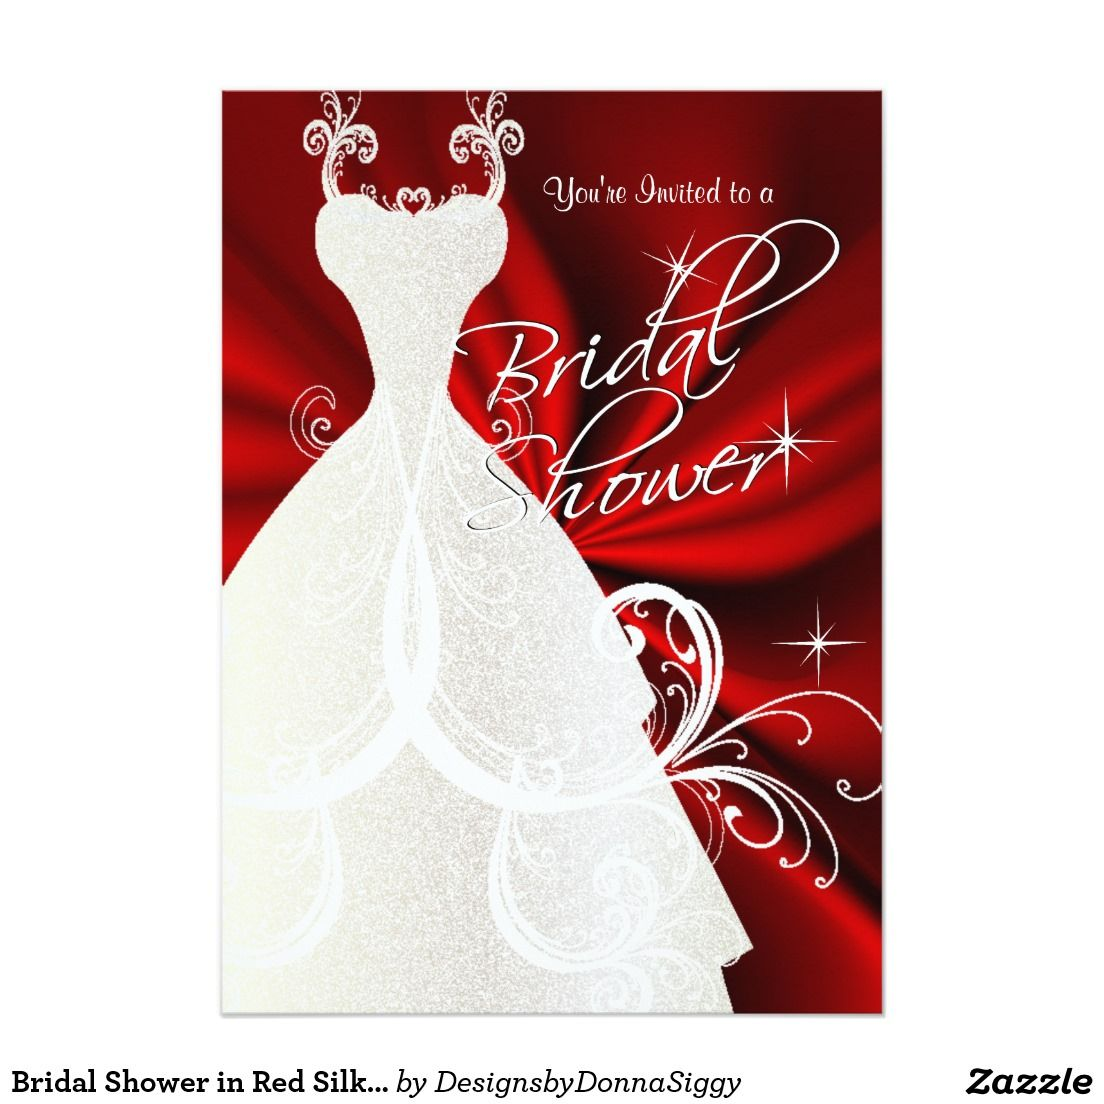 #Bridal #Shower in #Red Silky Satin 5x7 Paper #Invitations Card #bridalshower $2.06